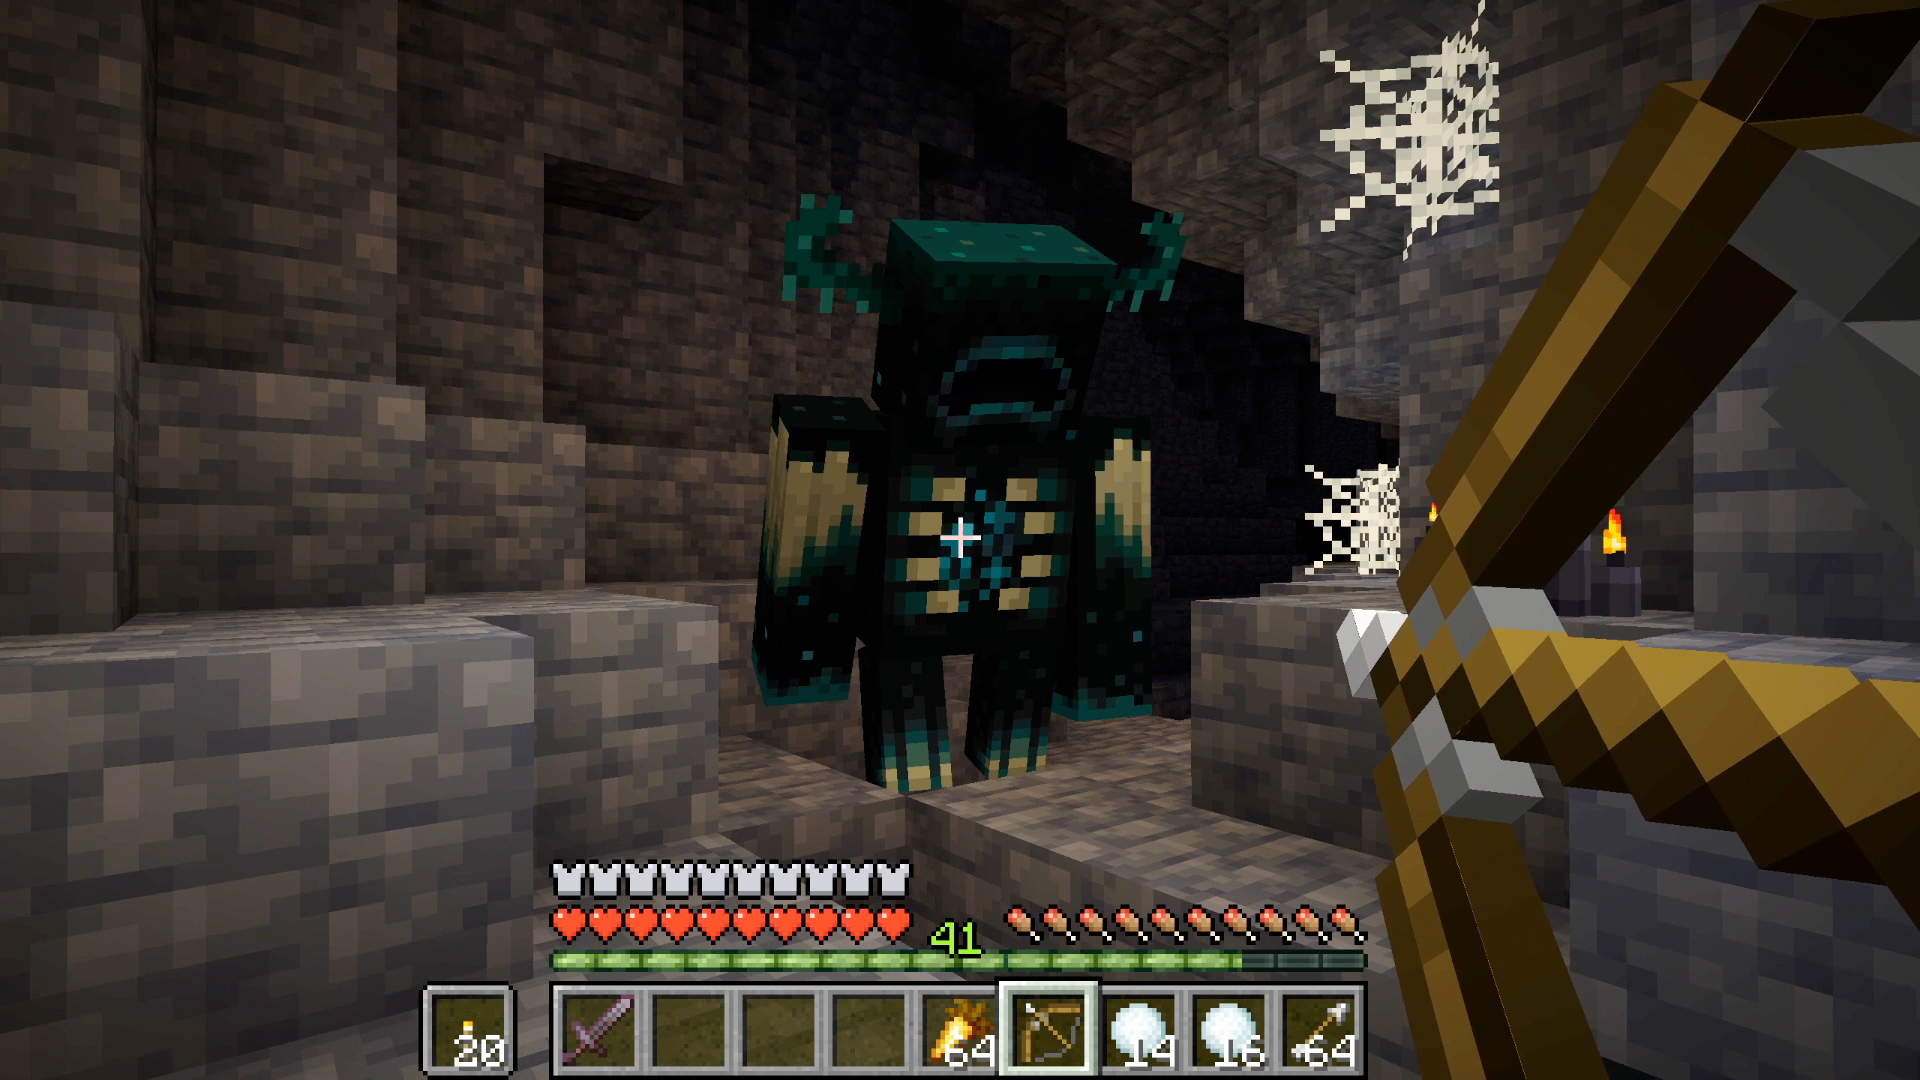 Minecraft - a spooky Warden shows up in a cave underground.